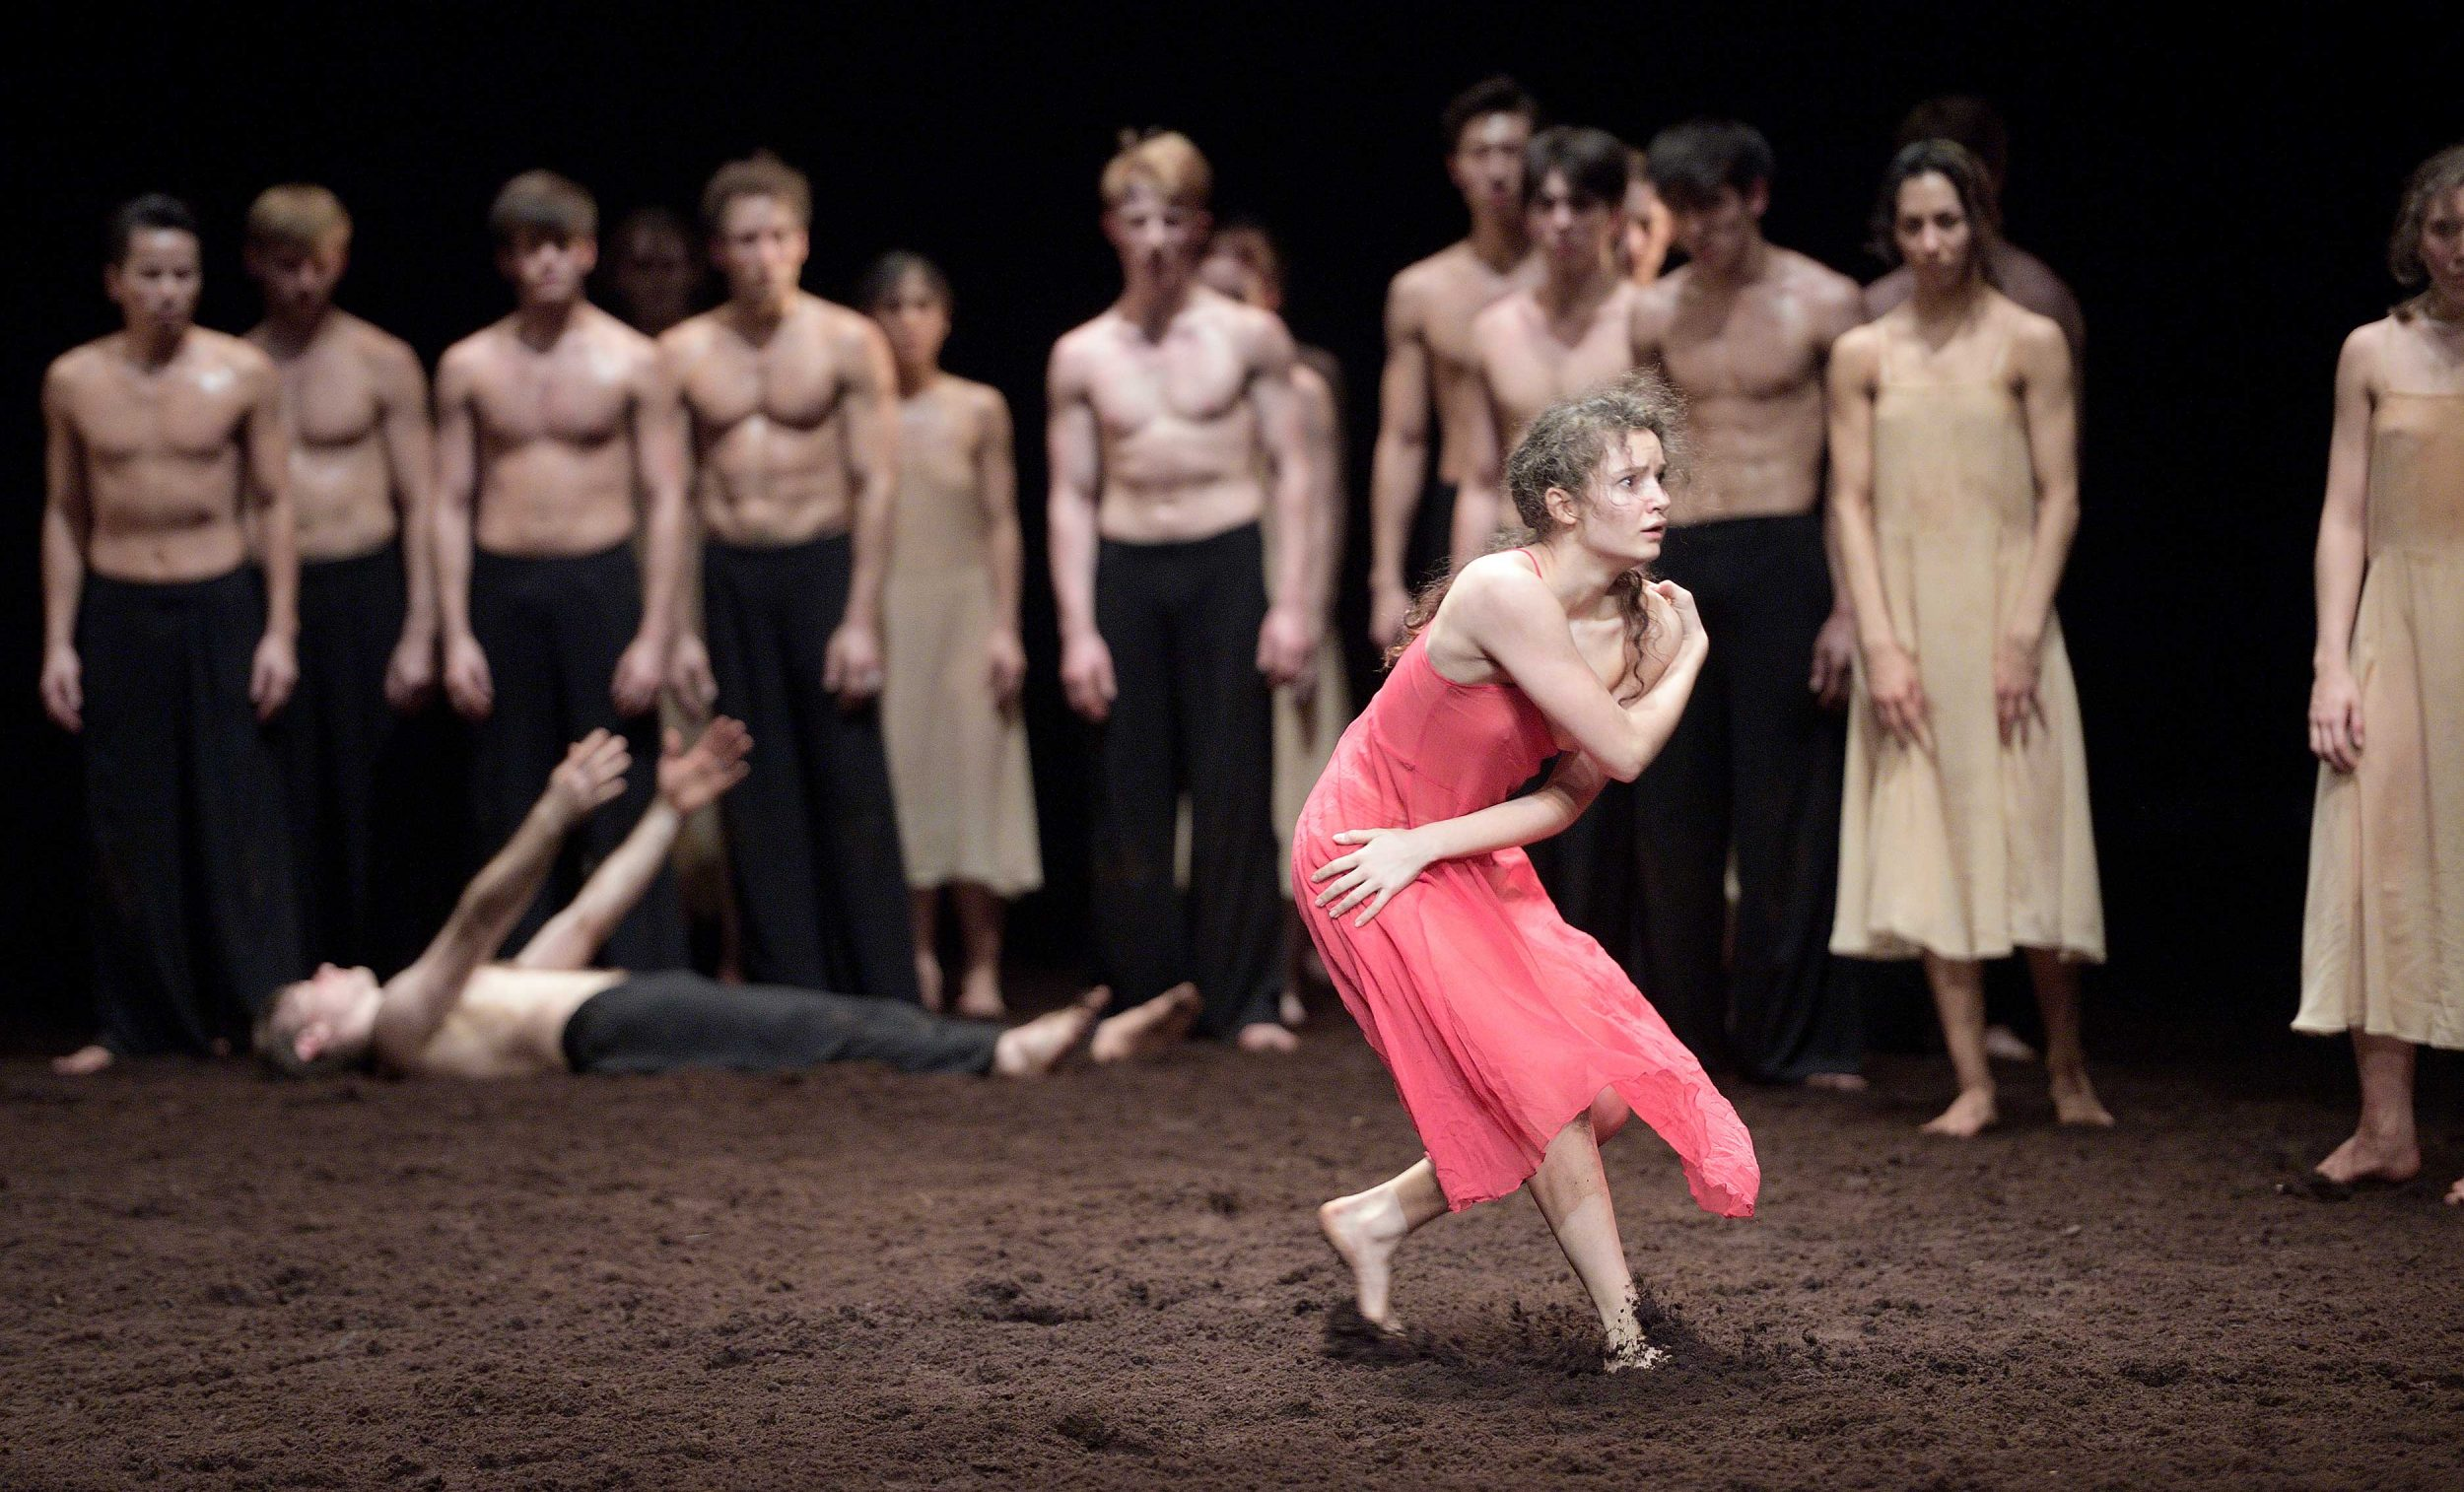 rancesca Velicu in Pina Bausch's Le Sacre du printemps by English National Ballet